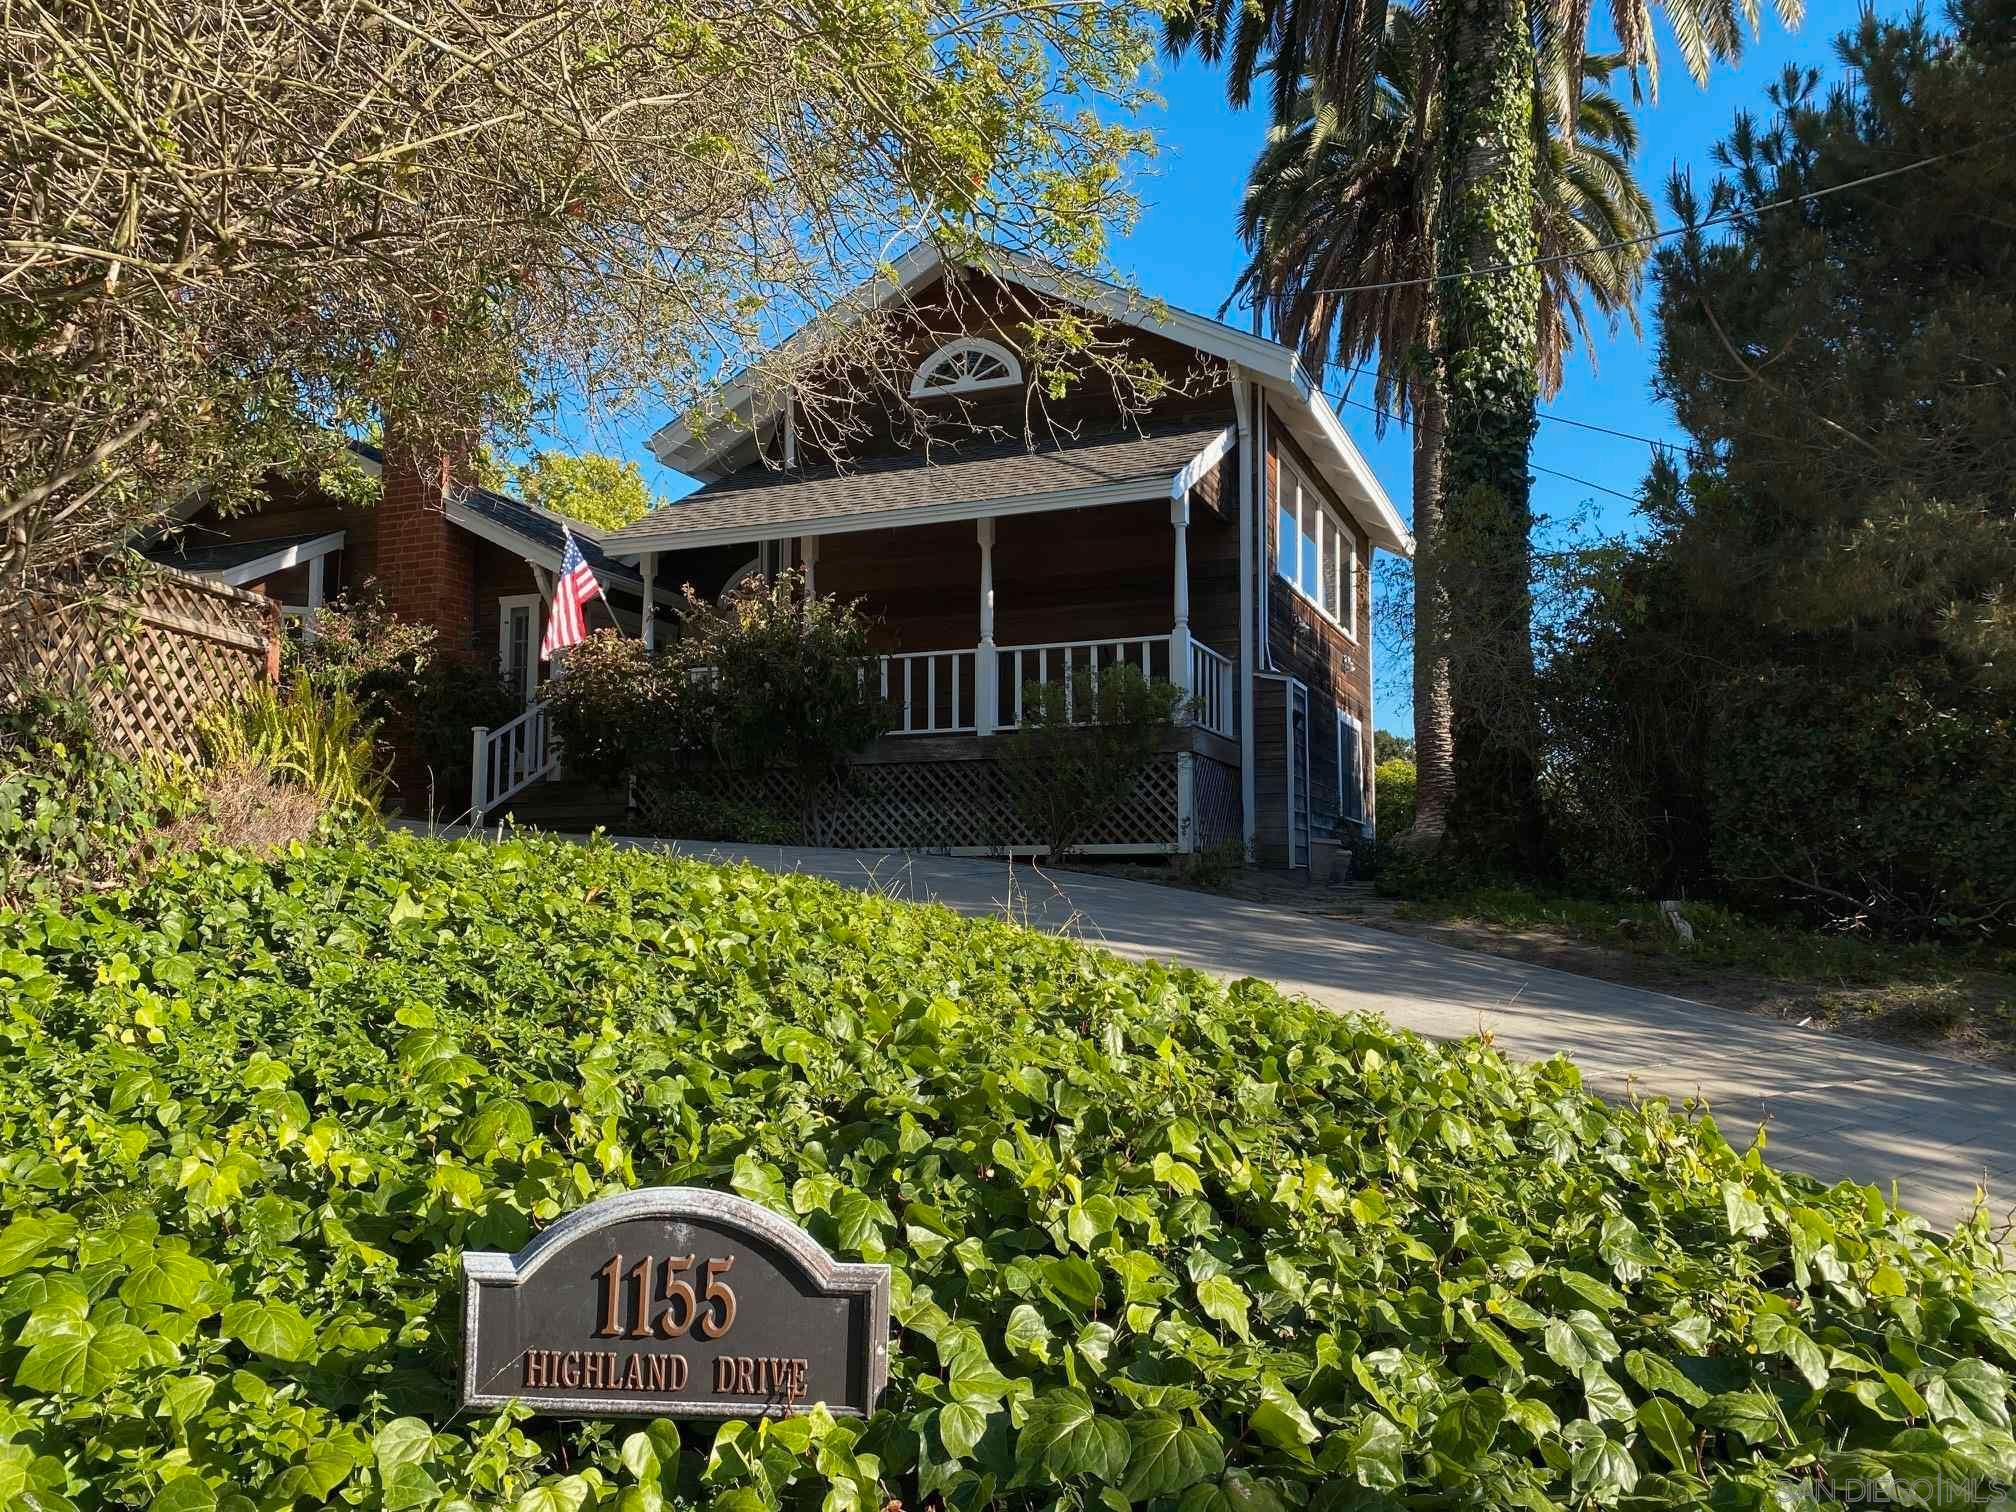 Main Photo: EAST DEL MAR House for sale : 5 bedrooms : 1155 Highland Drive in Del Mar